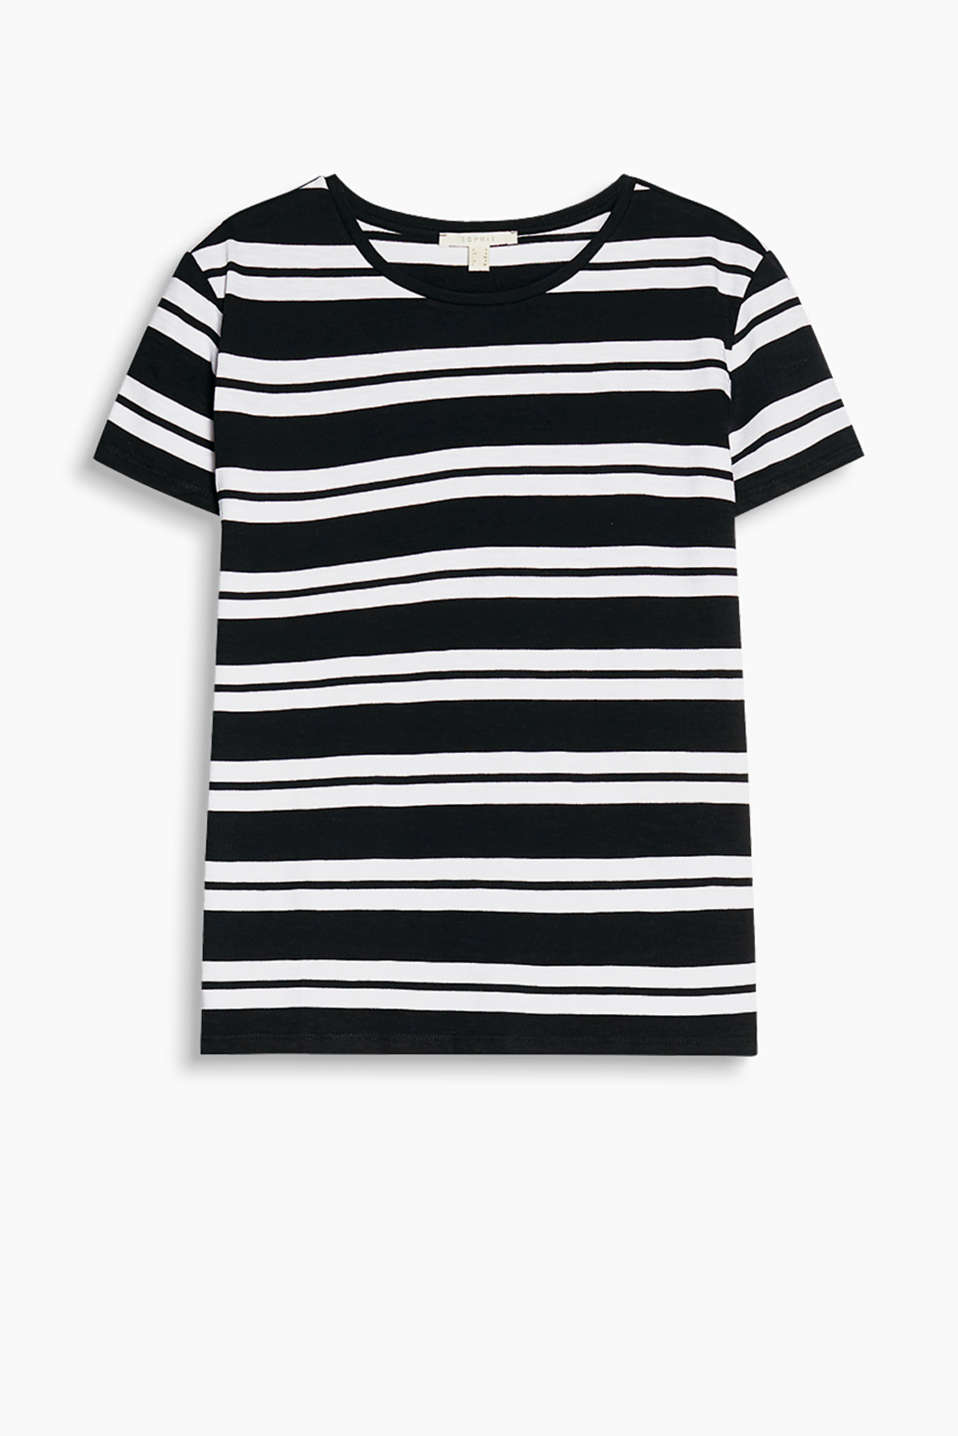 Striped slub jersey T-shirt with small decorative faux leather buttons